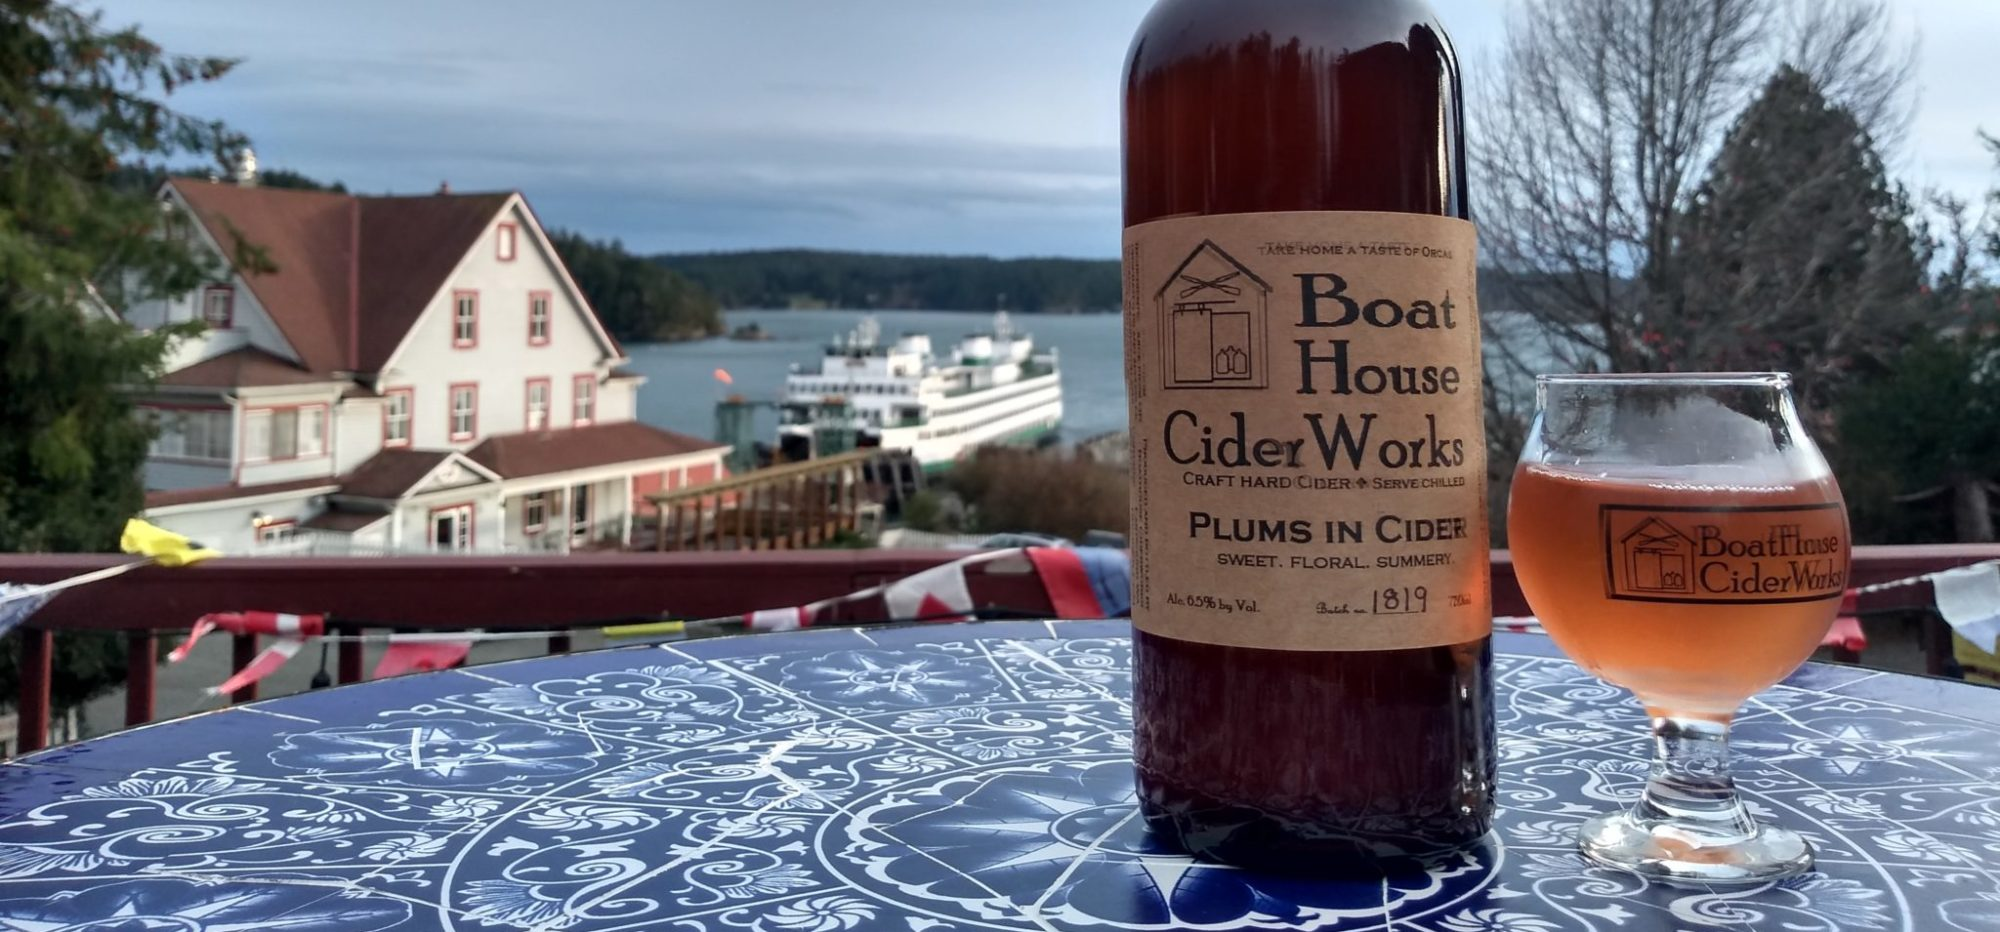 Boathouse CiderWorks